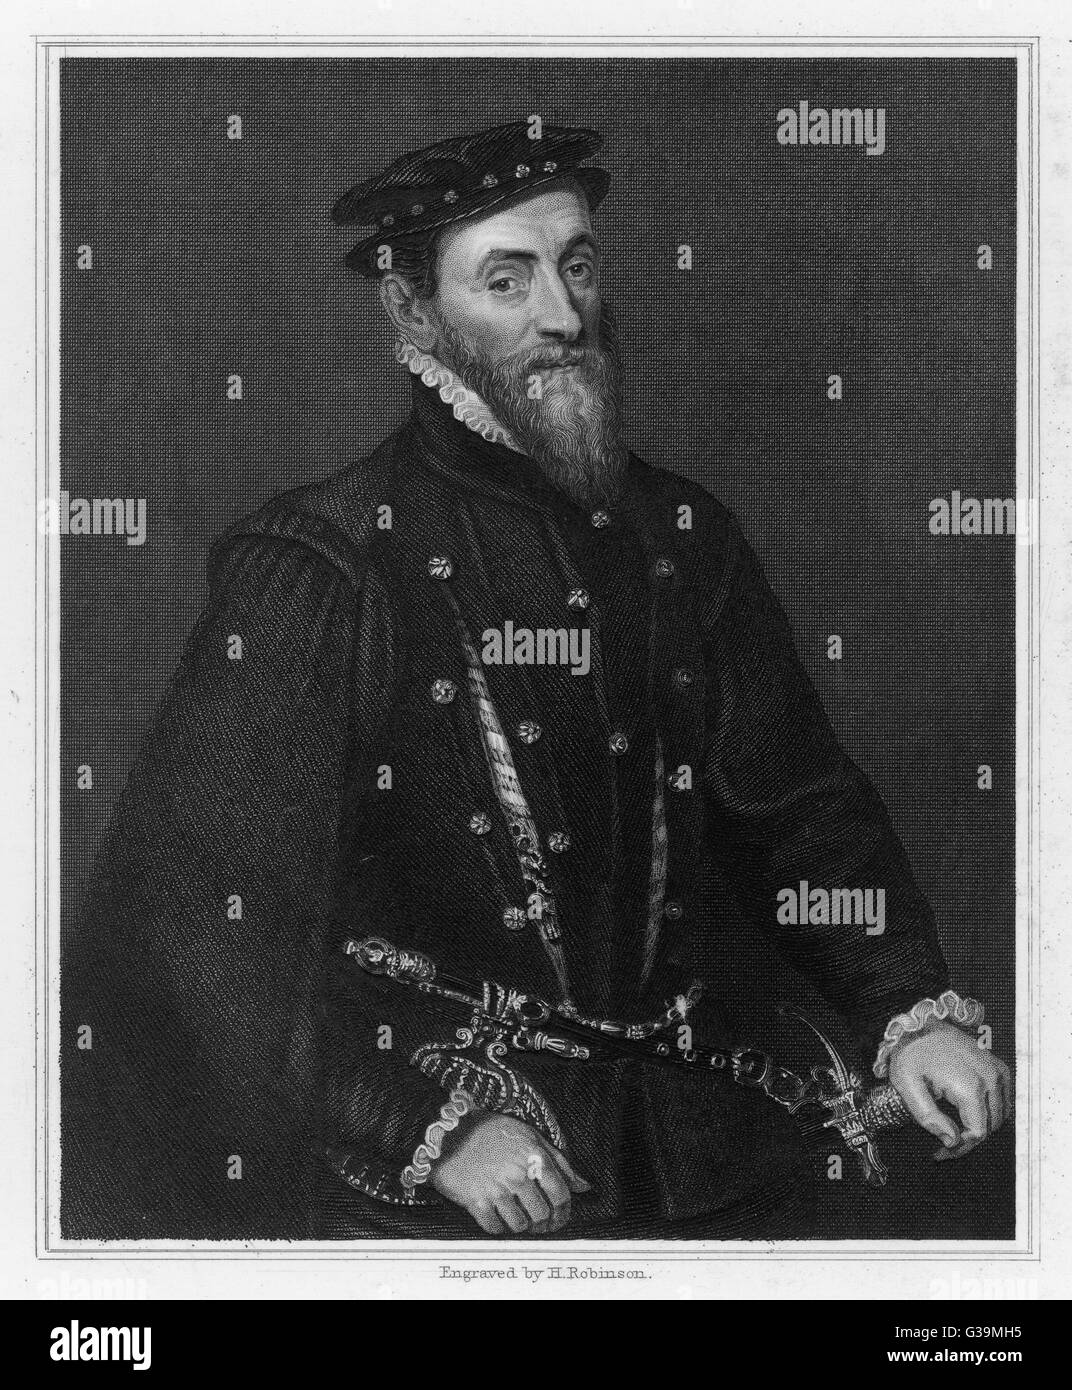 SIR THOMAS GRESHAM  English financier who built  the Royal Exchange and  founded Gresham College       Date: 1519 Stock Photo